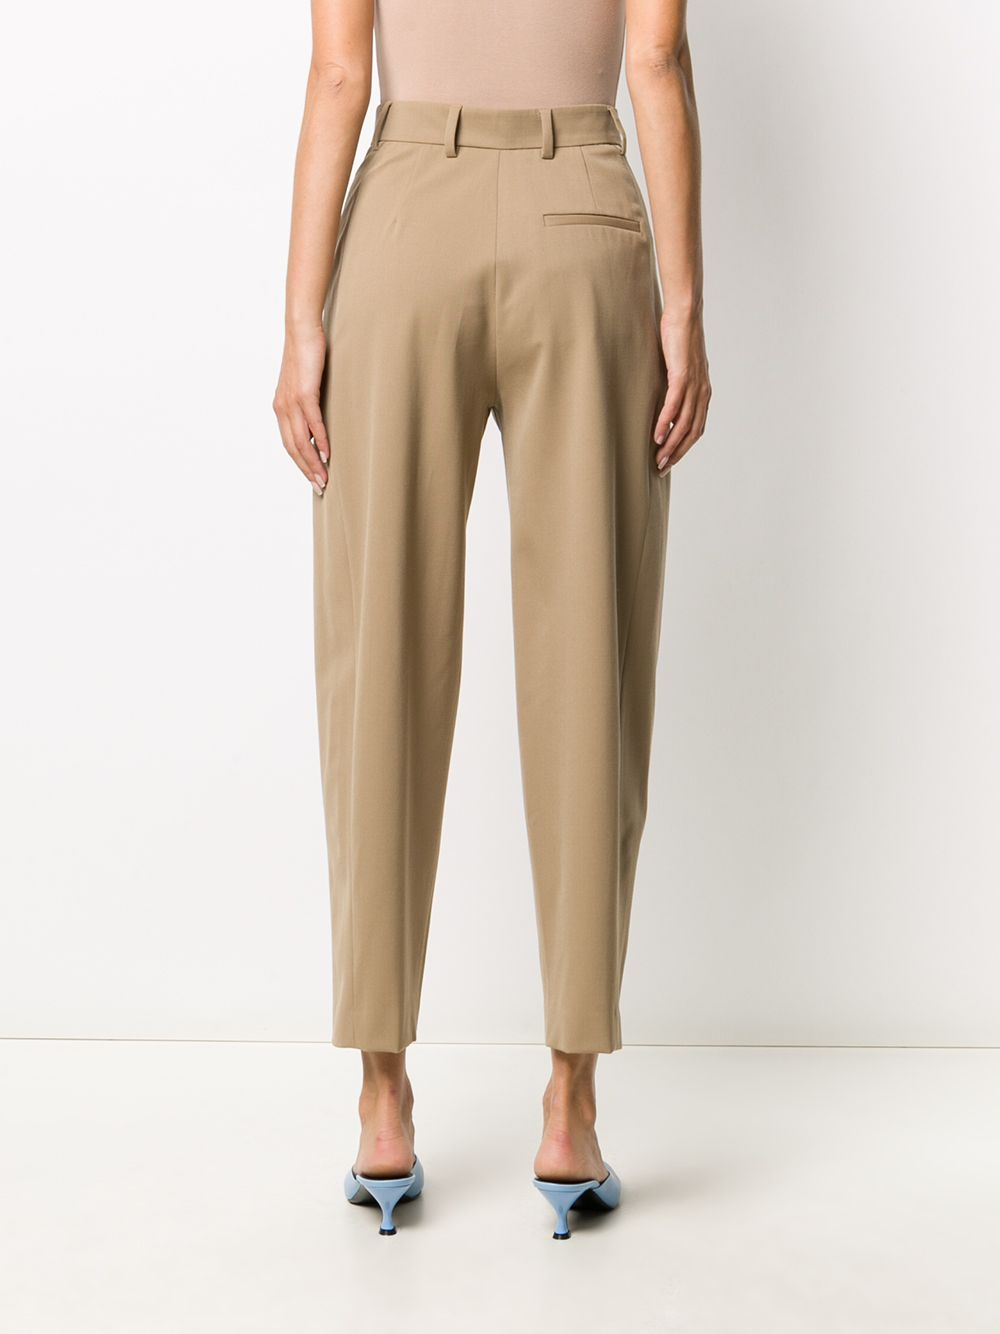 Beige stretch-virgin wool cropped tailored trousers featuring high waist ALBERTO BIANI |  | CC860-WO024114